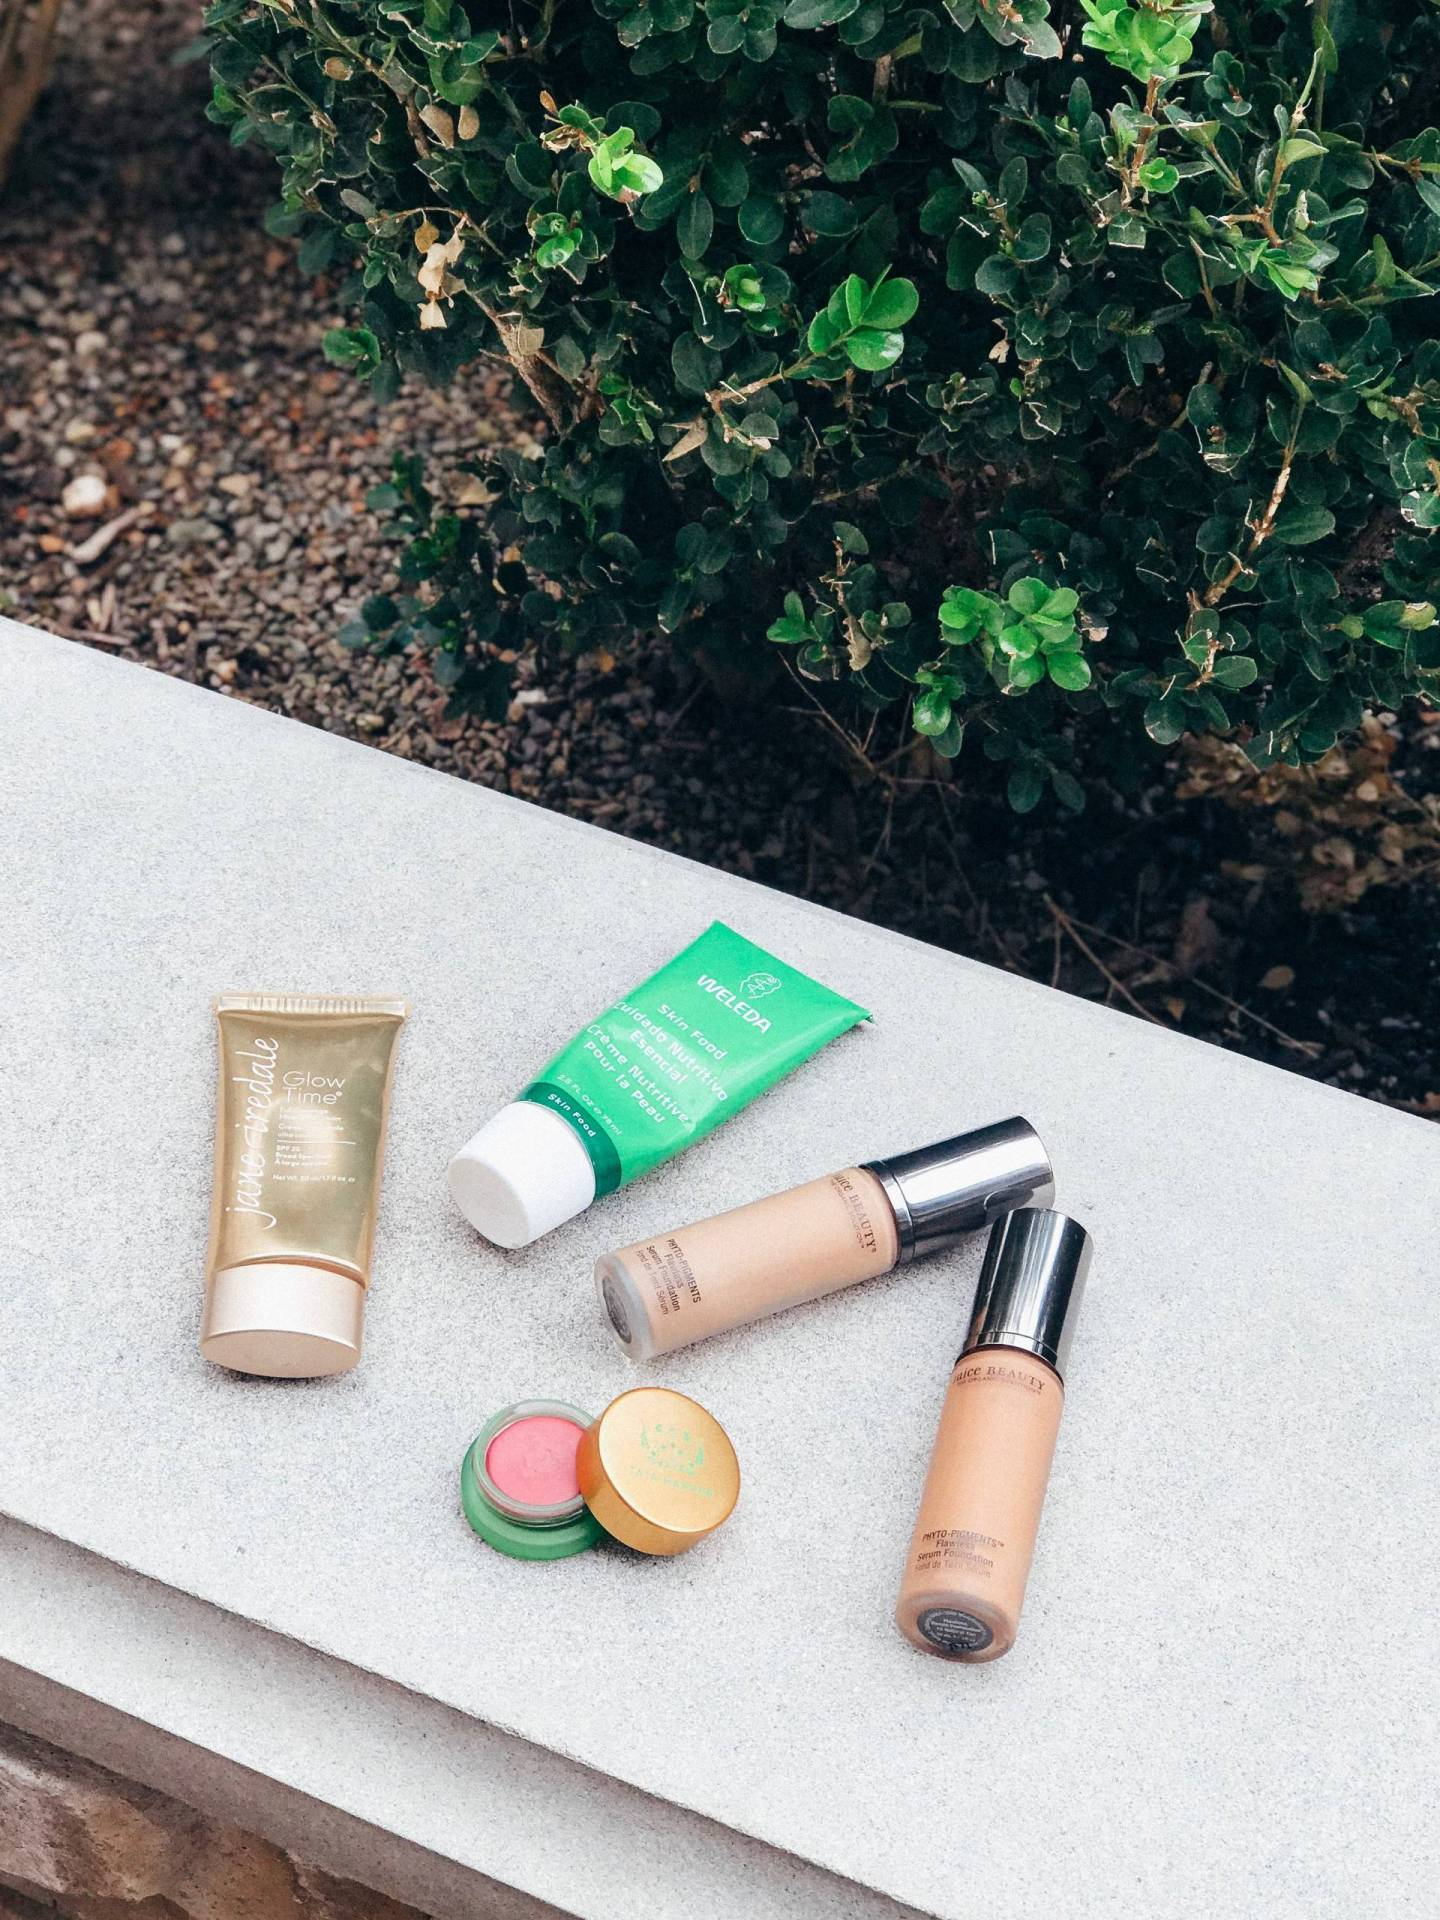 Clean Beauty Reviews vol I | Juice Beauty Phyto Pigments Flawless Serum Foundation, Tata Harper Volumizing Lip and Cheek Tint, Weleda Skin Food, and Jane Iredale Glow Time Full Coverage Mineral BB Cream with SPF 25